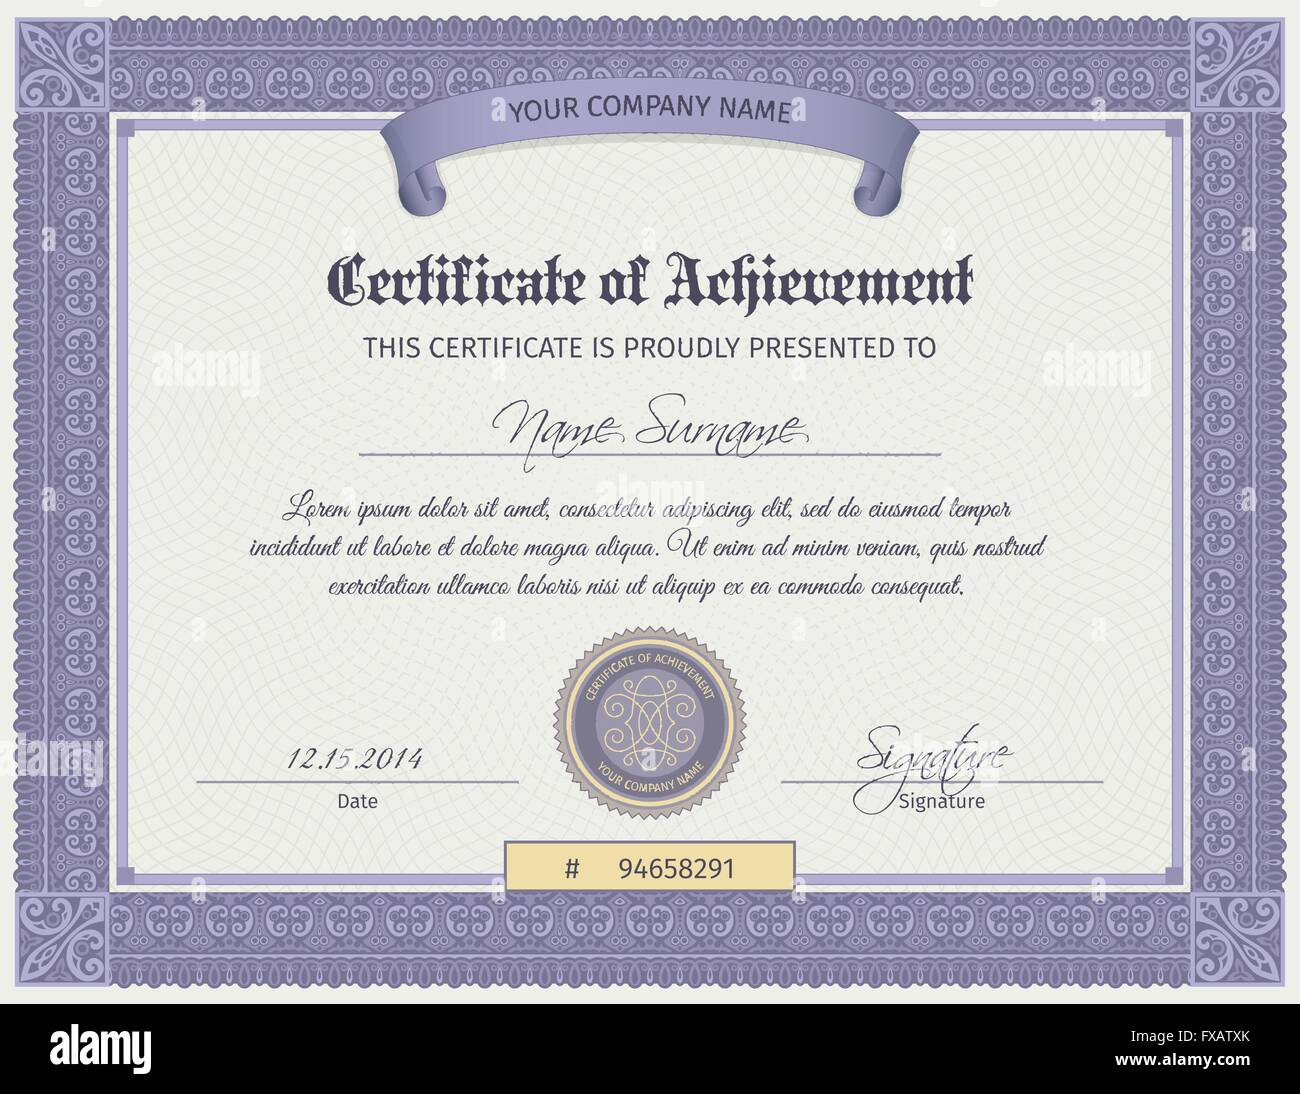 qualification certificate template stock vector art